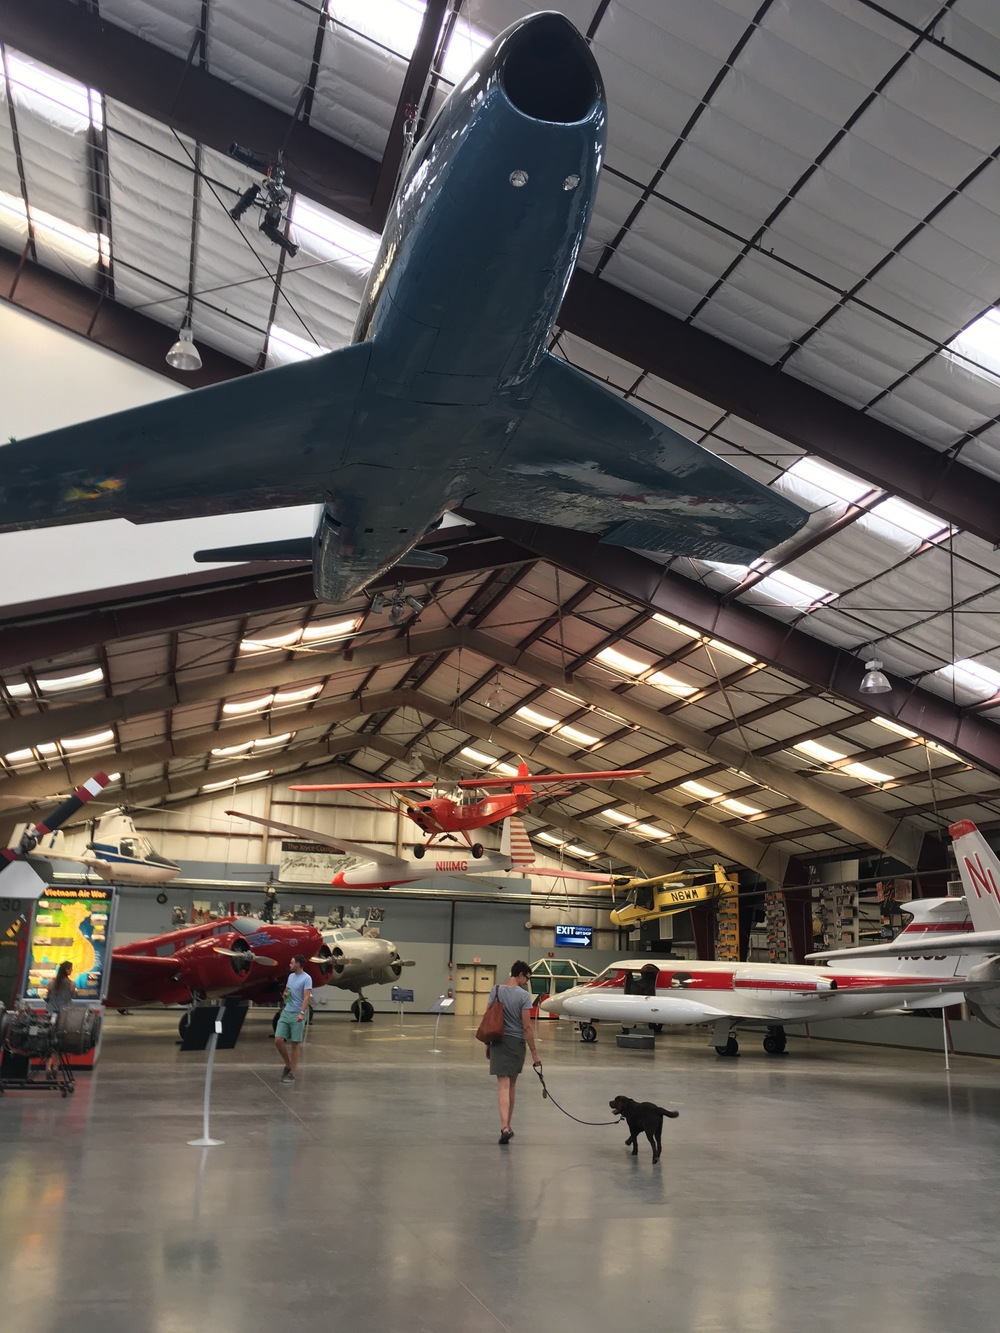 Obi, enjoying his first  museum experience in Tucson's Pima Air and Space Museum.